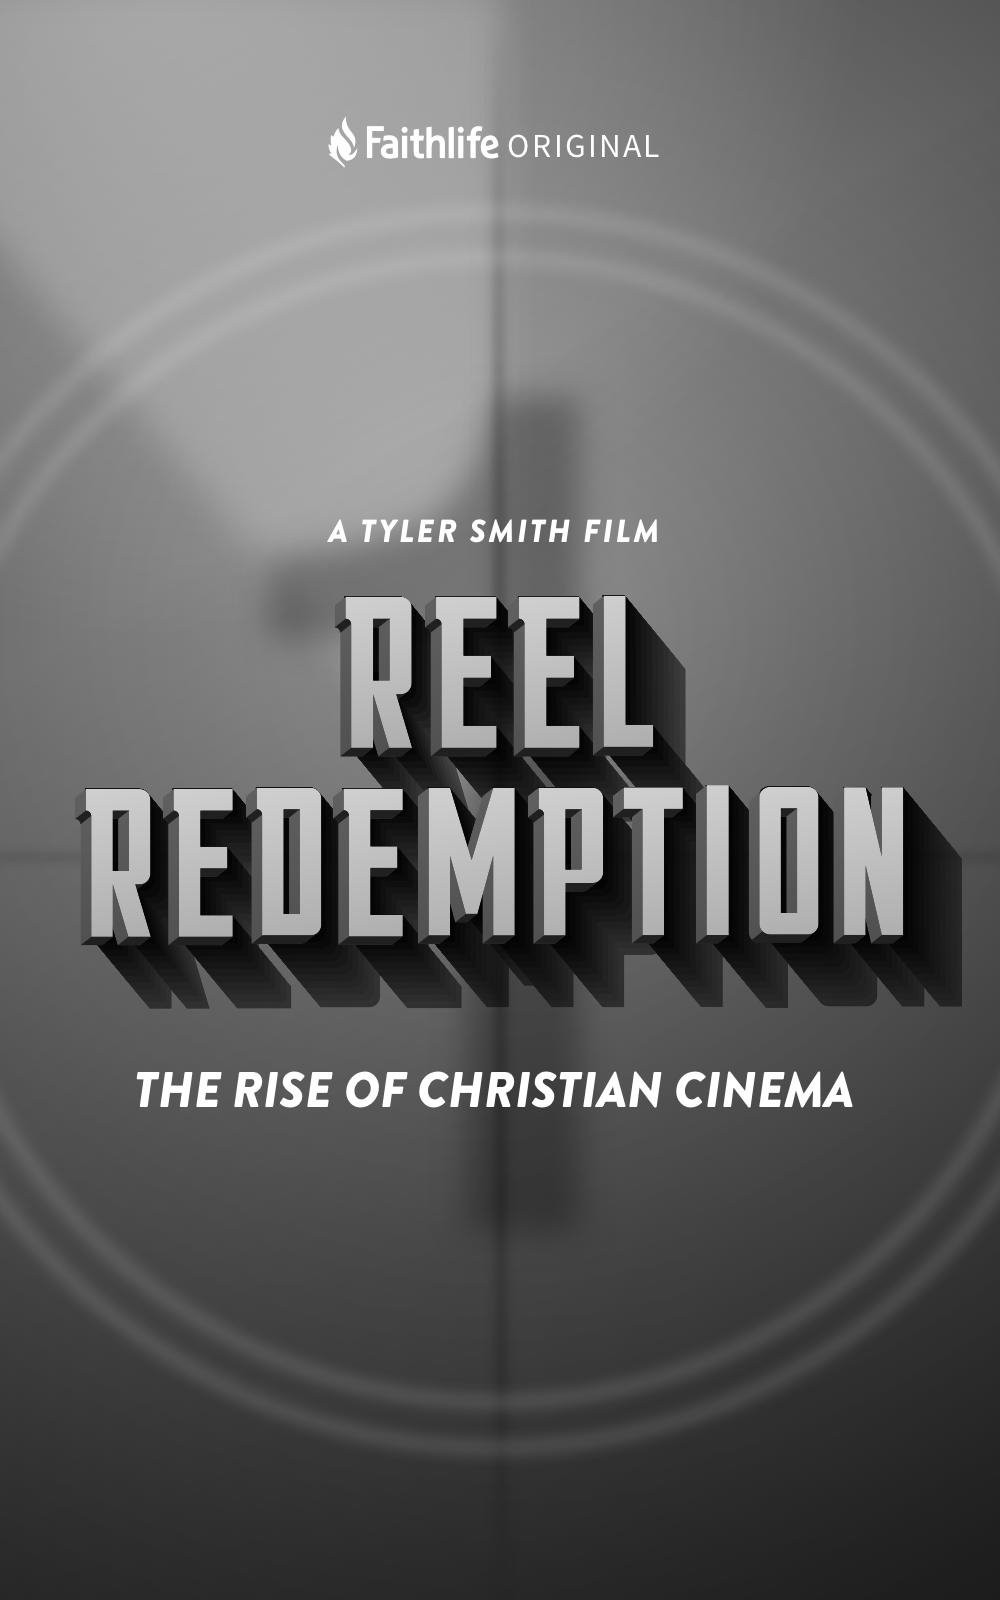 Reel Redemption: The Rise of Christian Cinema shows feature title